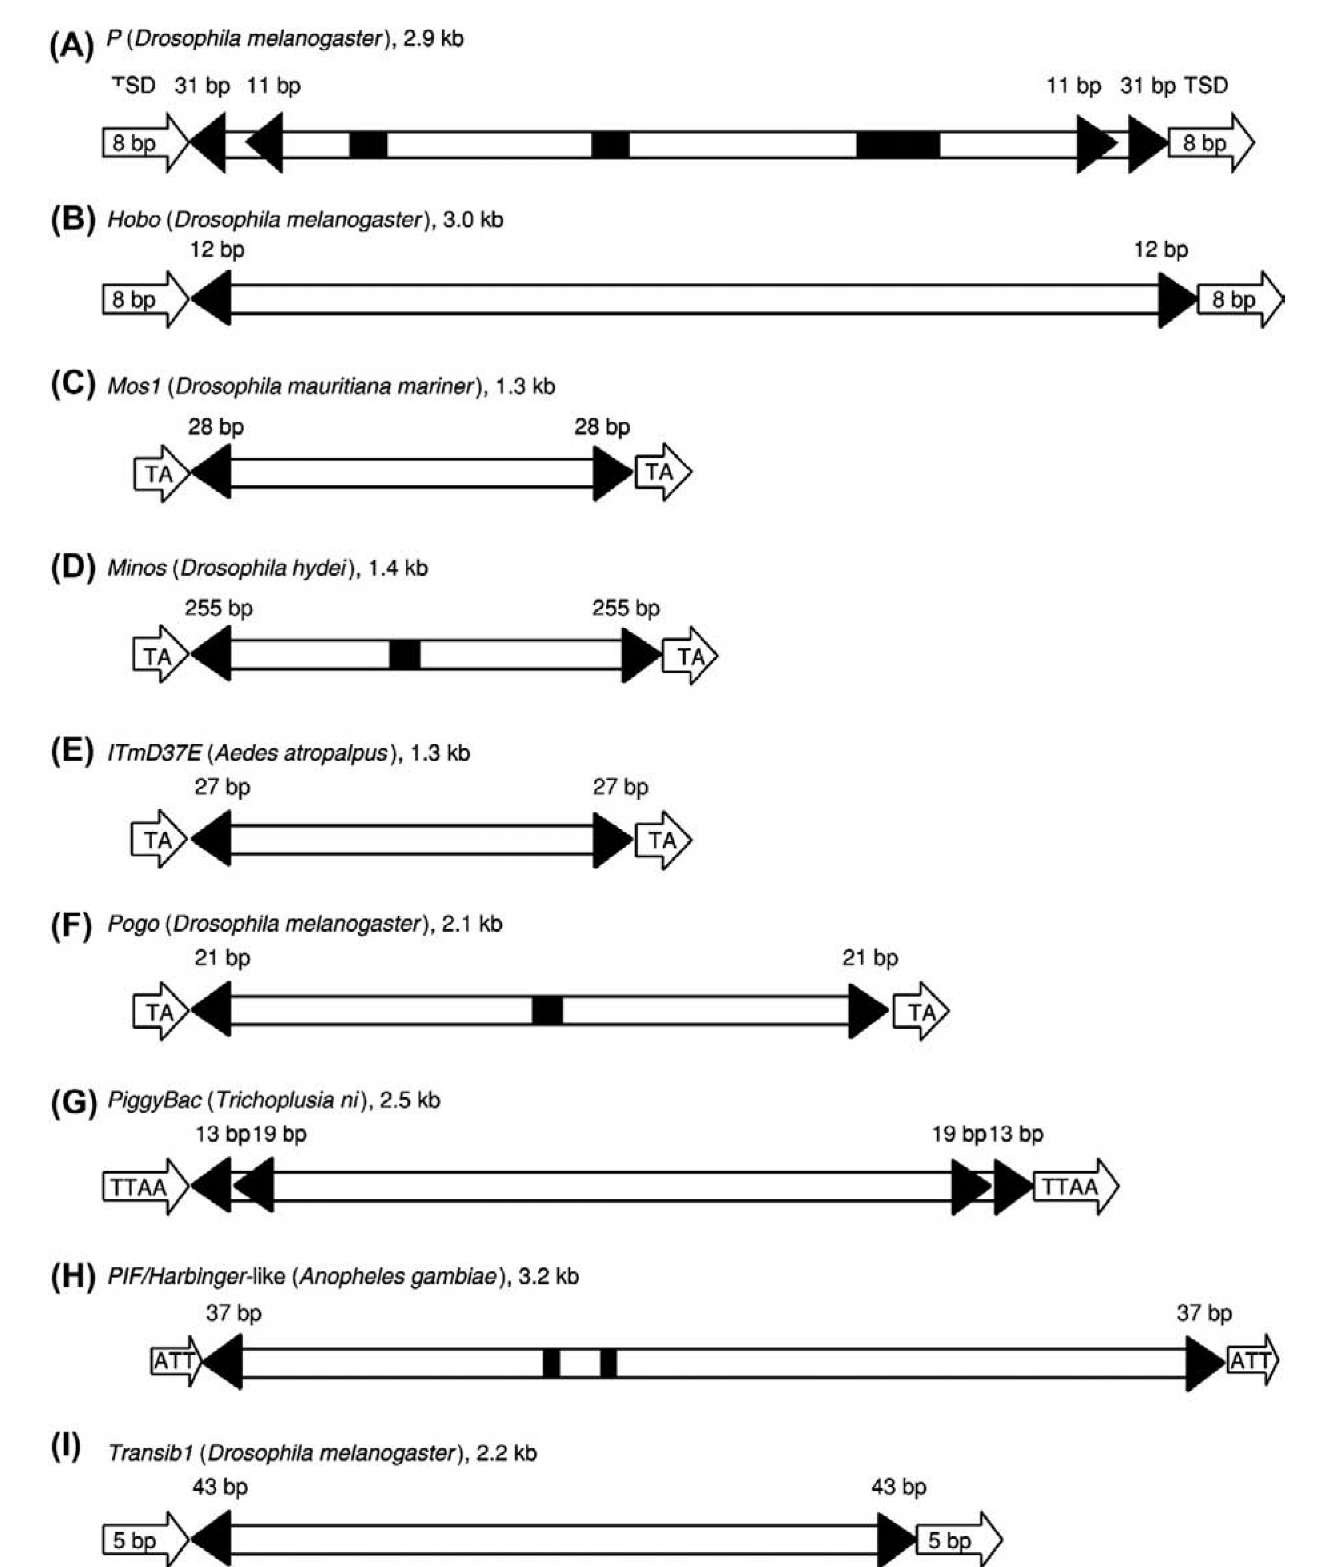 Structural characteristics of representative cut-and-paste DNA transposons in insects. The name of each representative transposon, its host species, and its approximate length are shown as the heading of each panel. Open arrows indicate target site duplications (TSDs); filled triangles indicate terminal and subterminal inverted repeats. The lengths of these inverted repeats are marked. Exons are shown as open boxes, and introns are shown as filled black boxes. 5' and 3' untranslated regions are not shown. The elements are not drawn to scale.